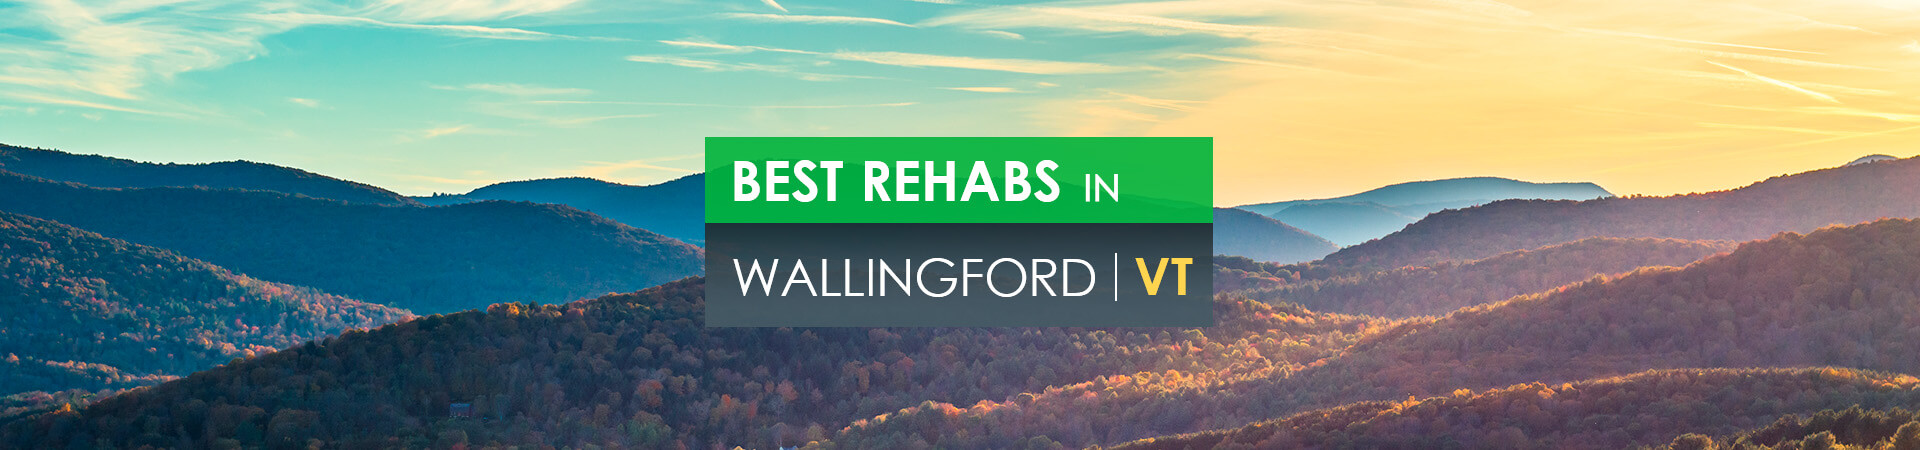 Best rehabs in Wallingford, VT